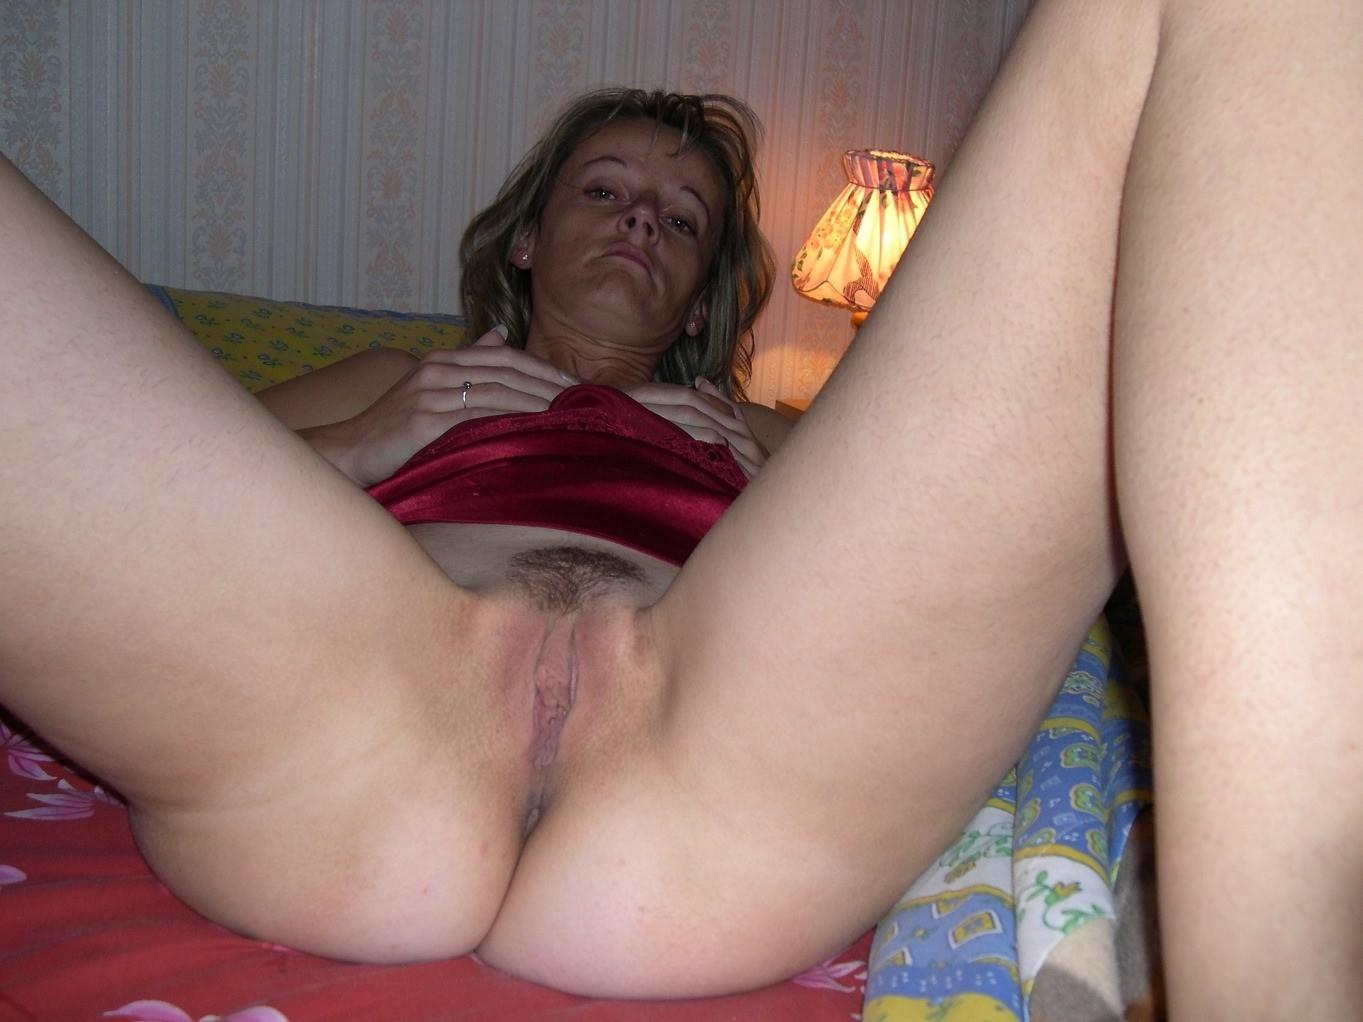 Skinny wife lying on the bed reveals her abundant hairy hot vagina. Nude amateur mom exposing her furry pussy on a erotic pic